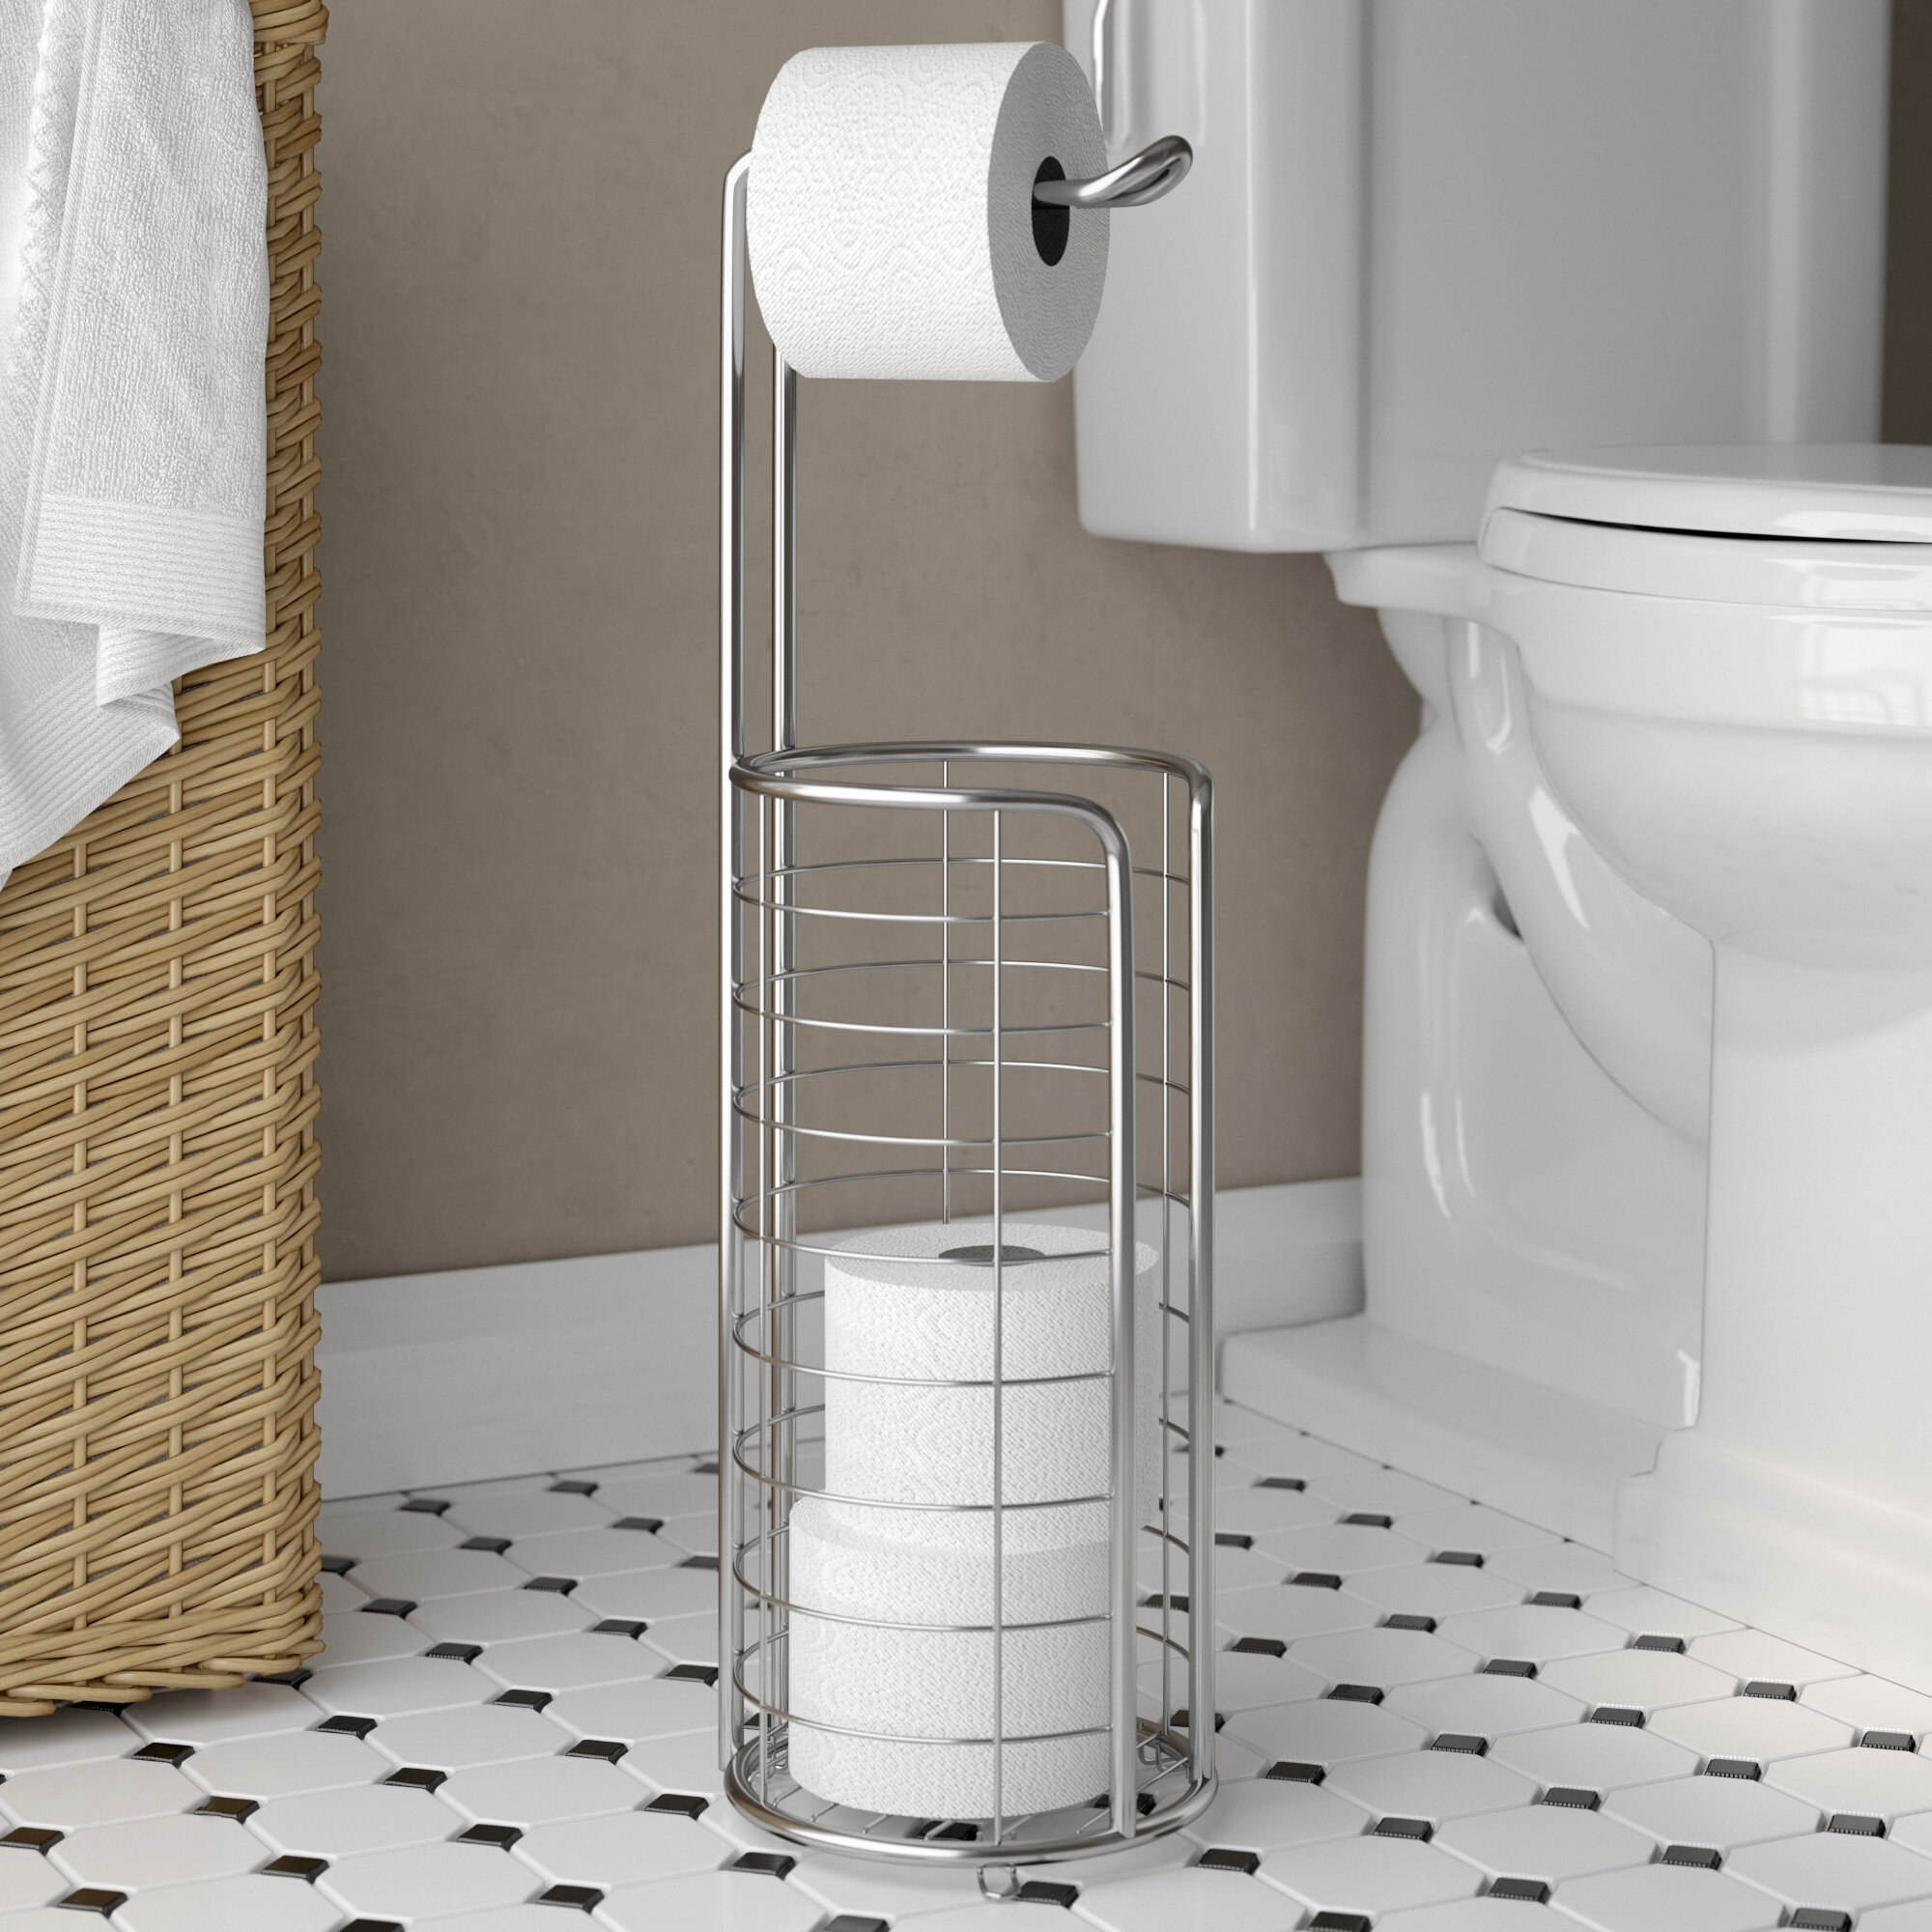 Rebrilliant Eisele Free Standing Toilet Paper Holder Reviews Wayfair